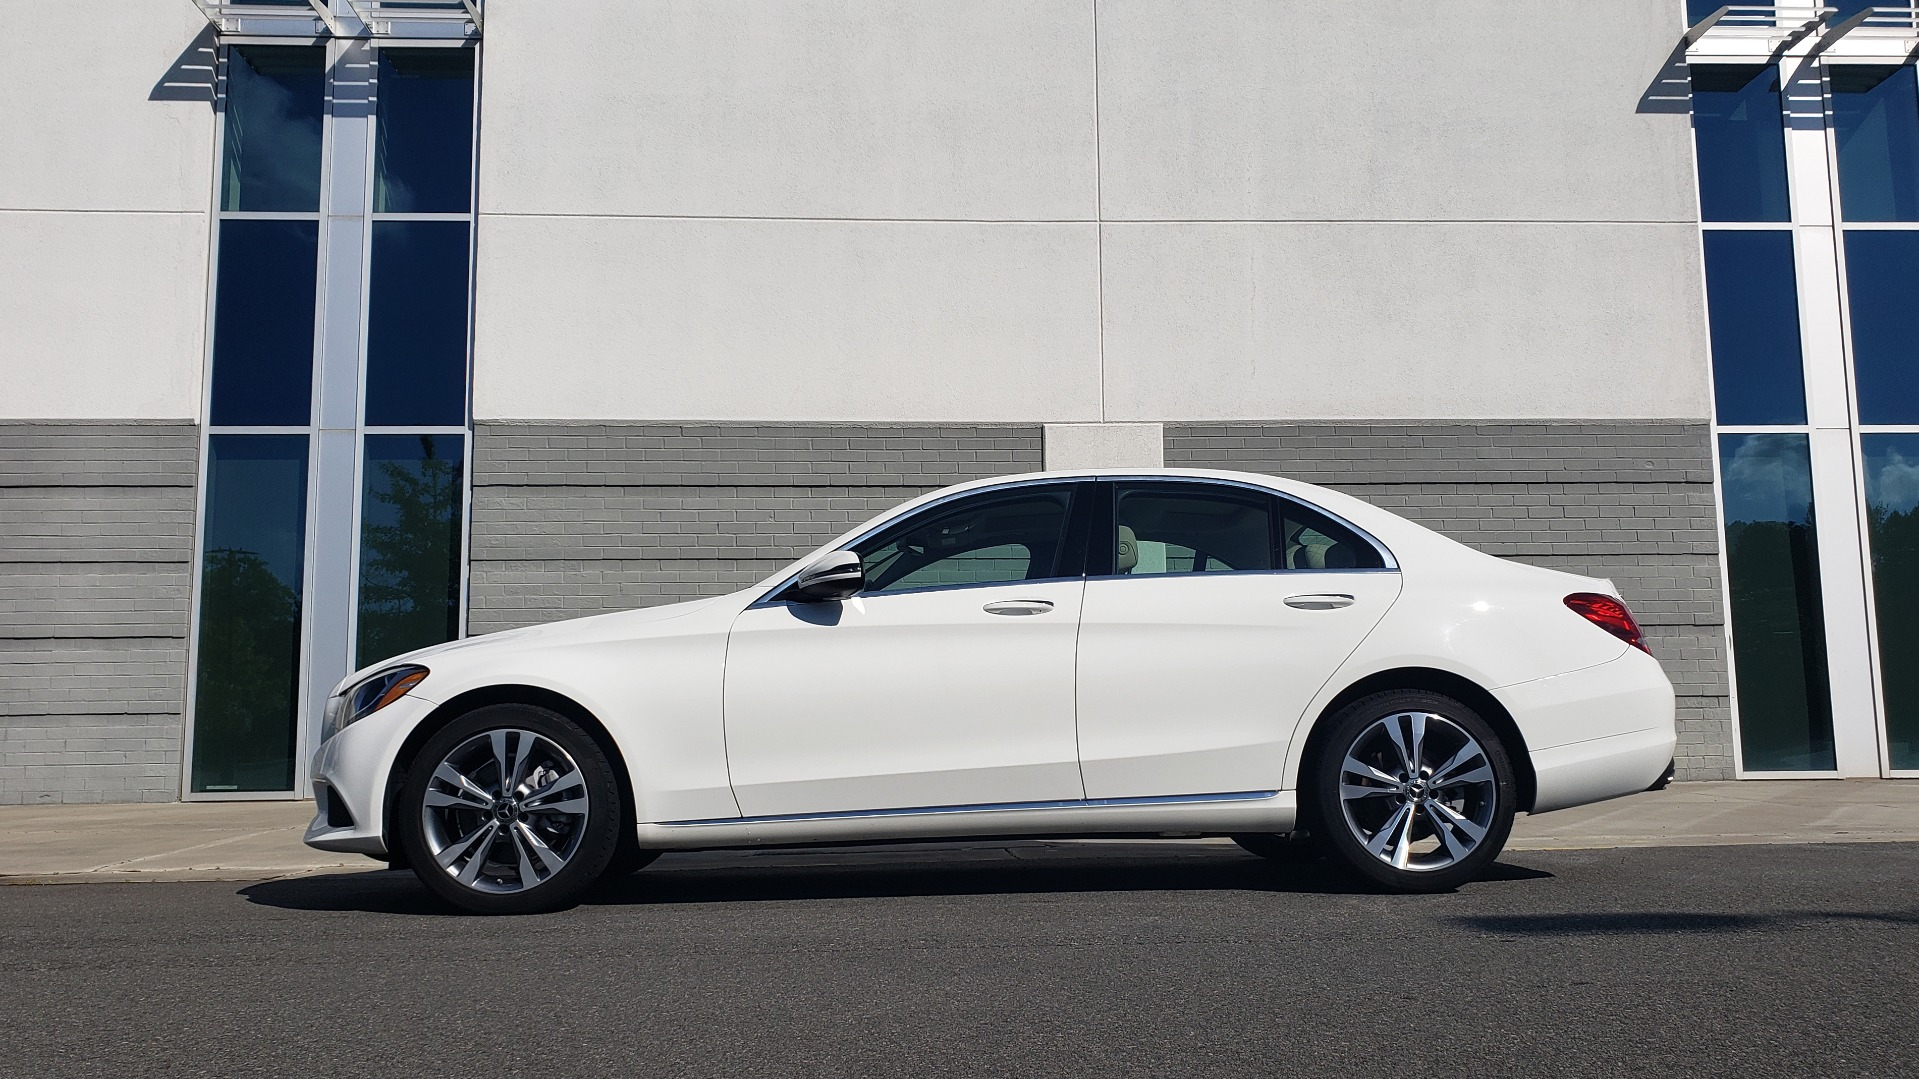 Used 2018 Mercedes-Benz C-Class C 300 4MATIC PREMIUM / APPLE CARPLAY / PANO-ROOF / REARVIEW for sale $33,795 at Formula Imports in Charlotte NC 28227 3